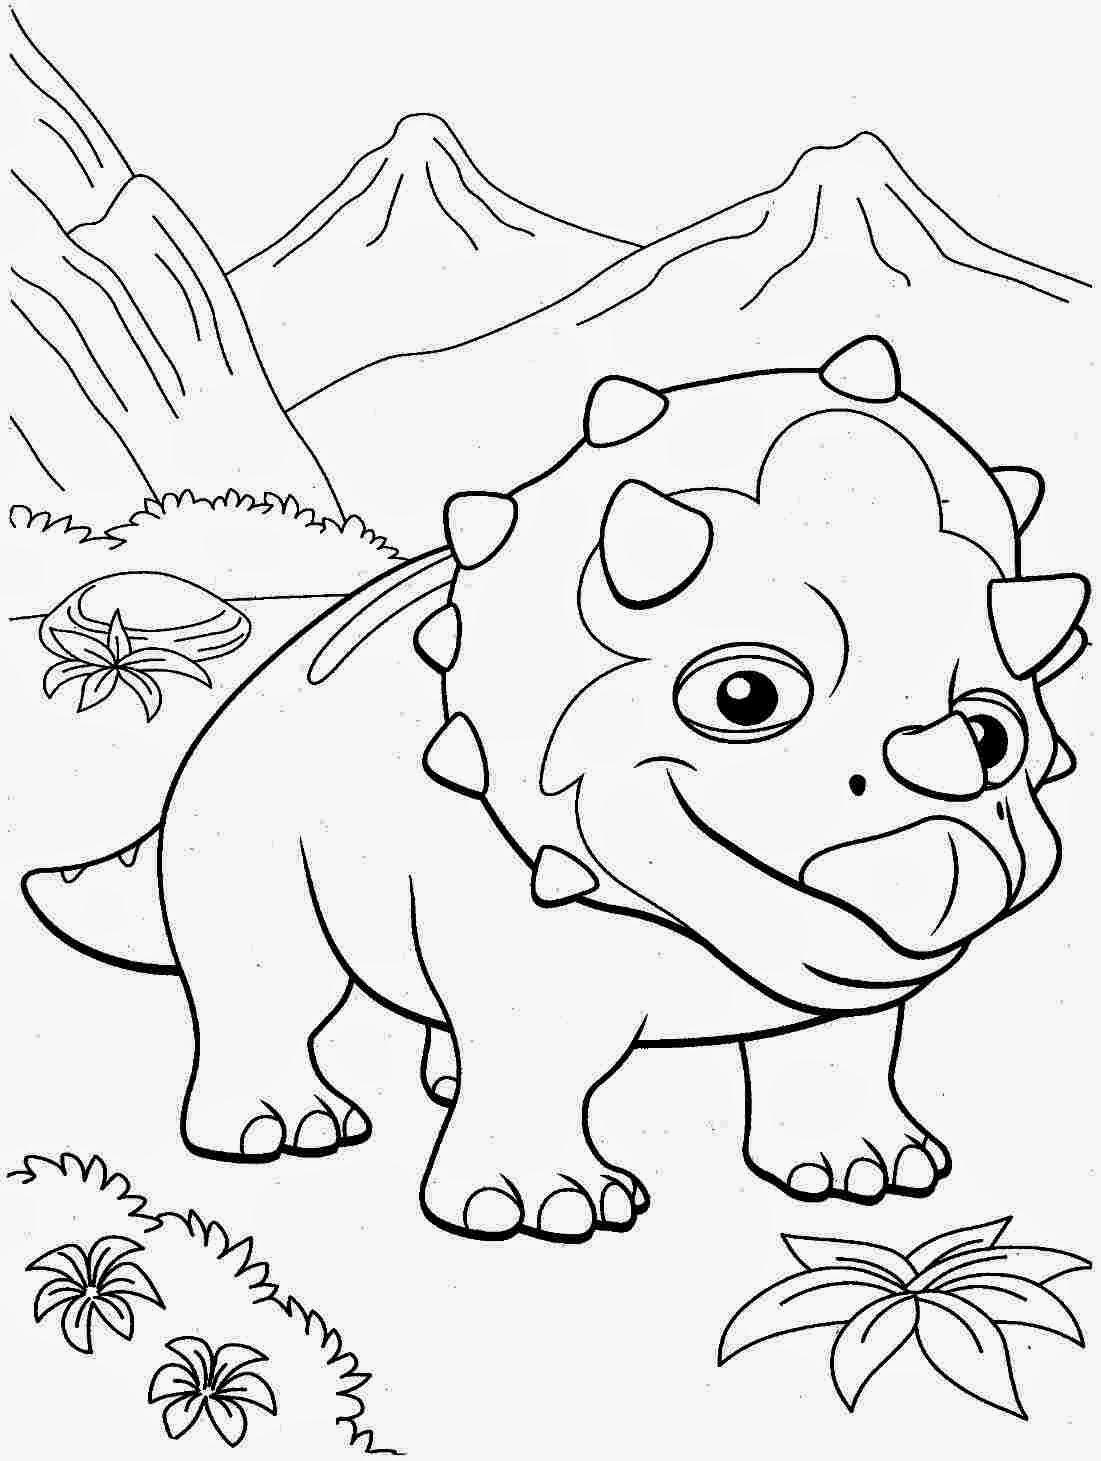 free printable dinosaur coloring pages coloring pages dinosaur free printable coloring pages printable dinosaur pages coloring free